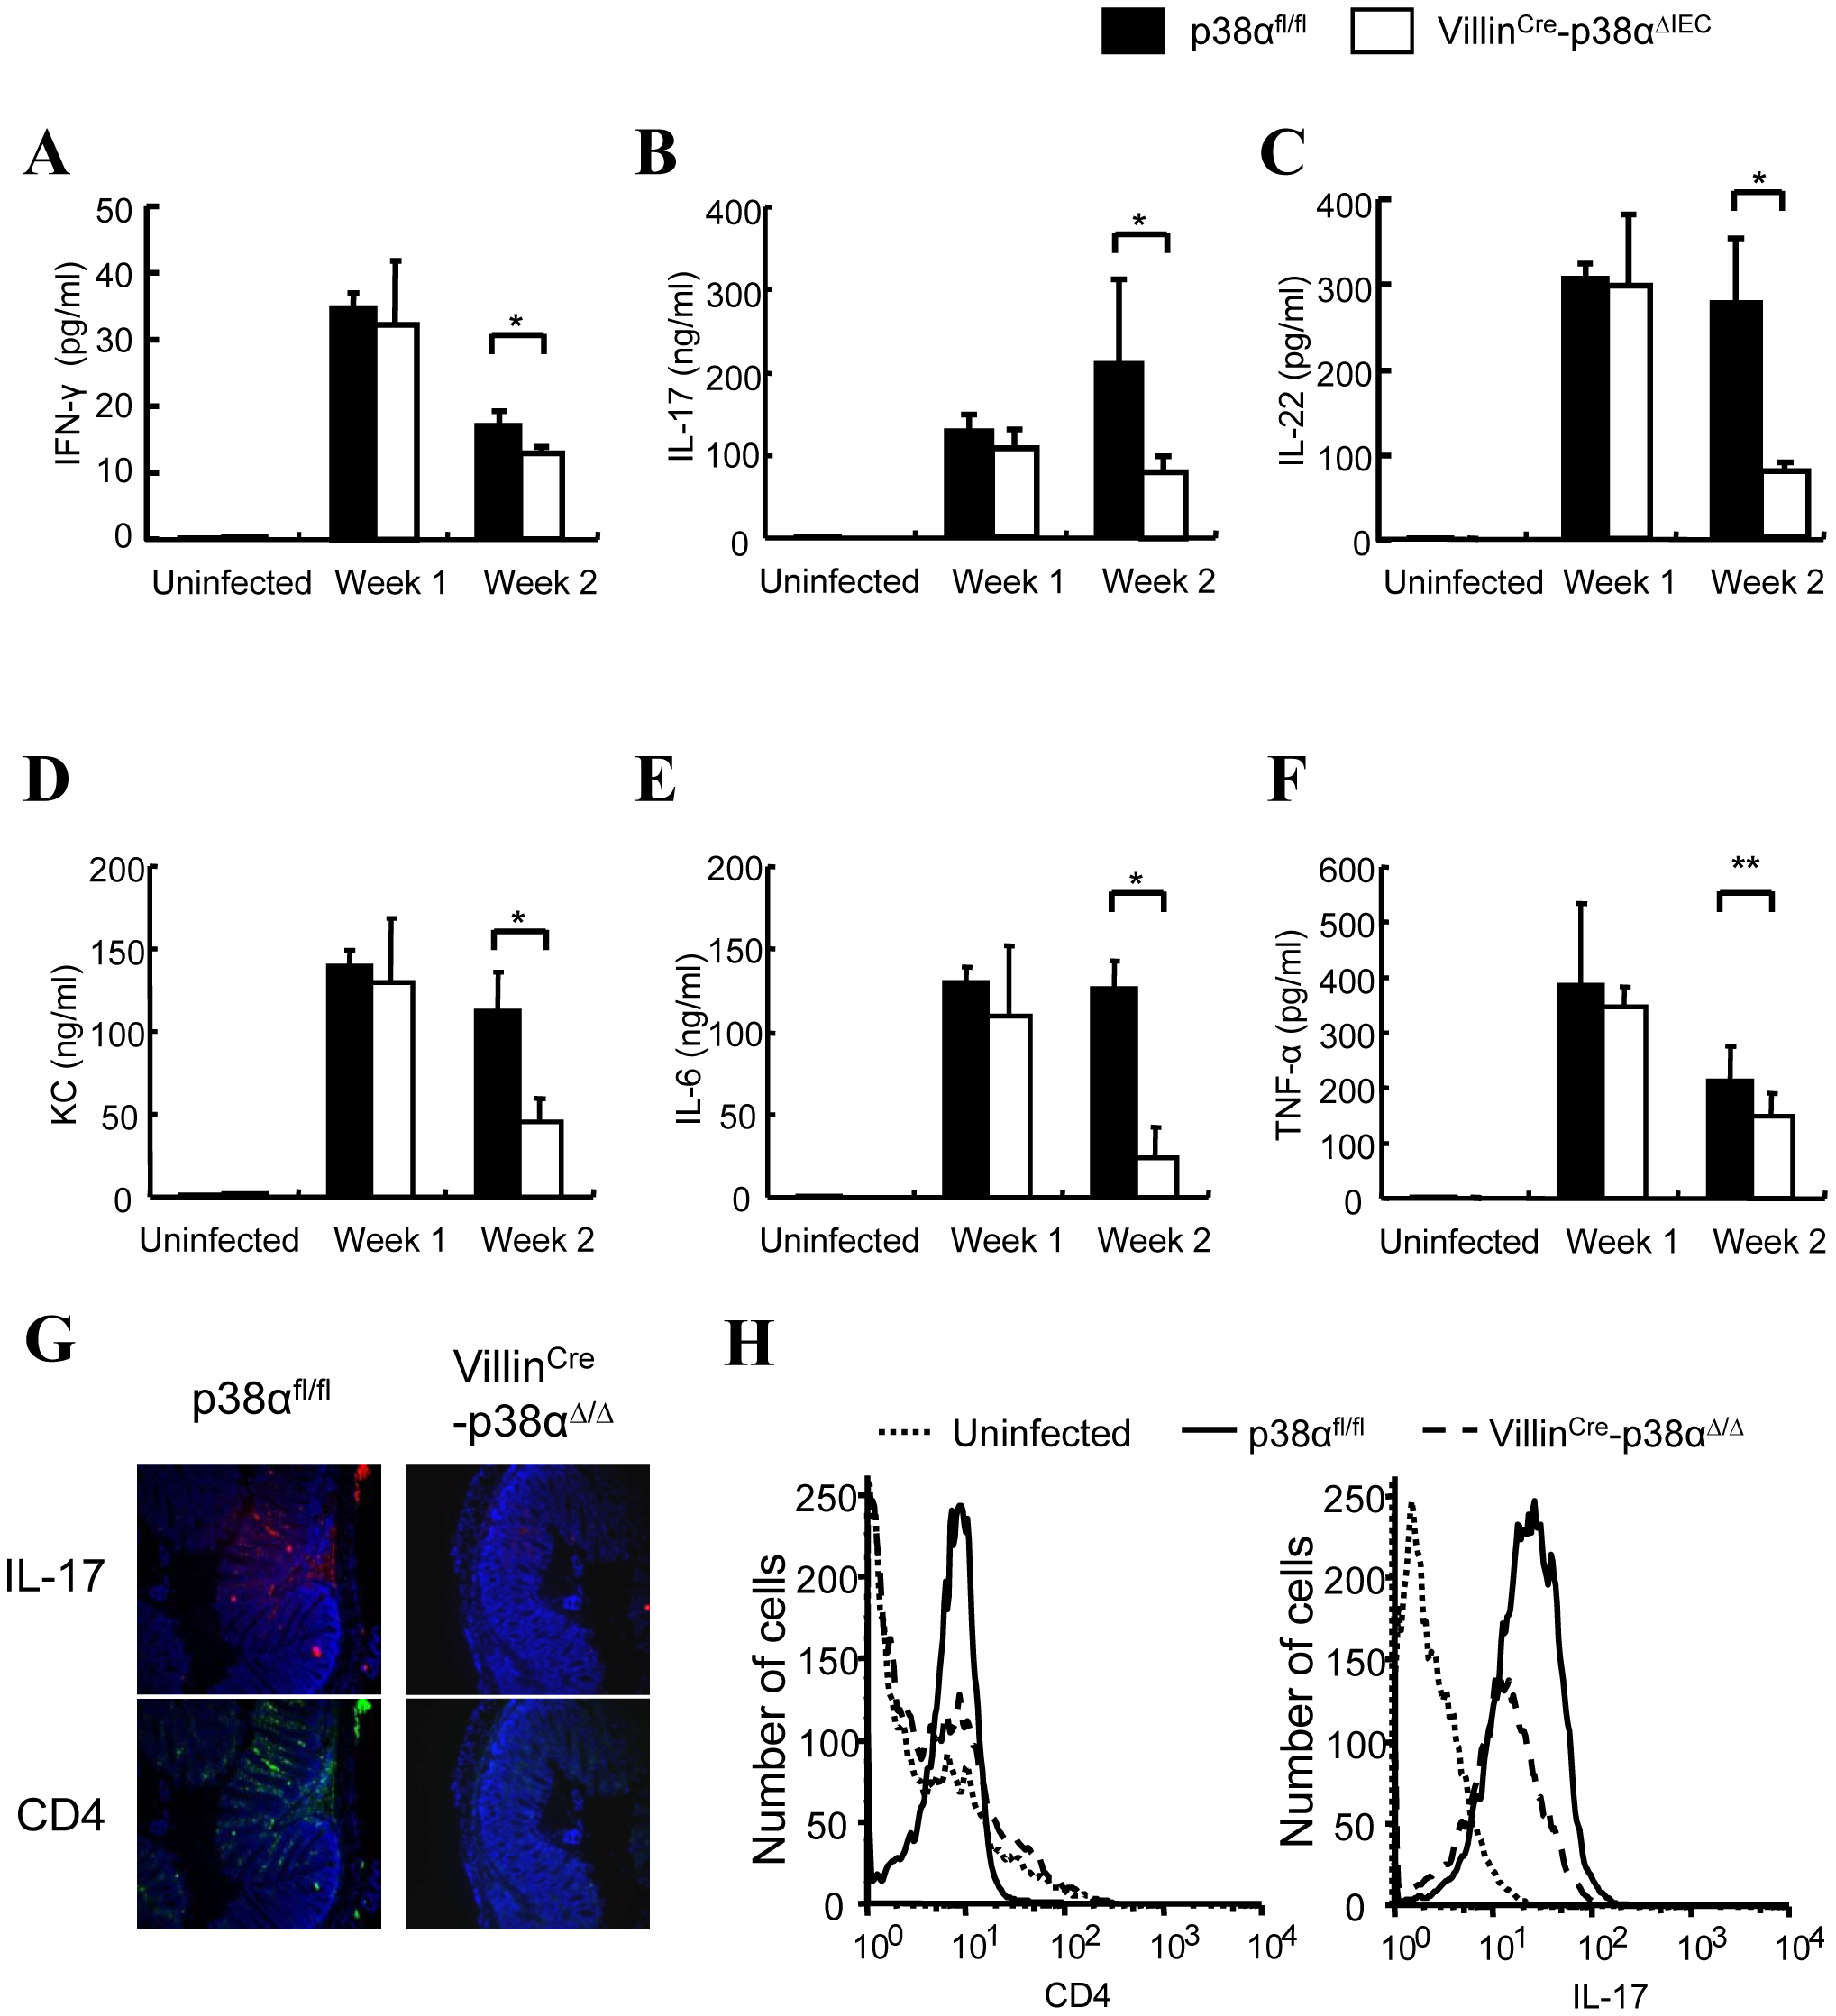 Cytokine expressions in the colon of VillinCre-p38α<sup>ΔIEC</sup> mice are impaired after <i>C. rodentium</i> infection.